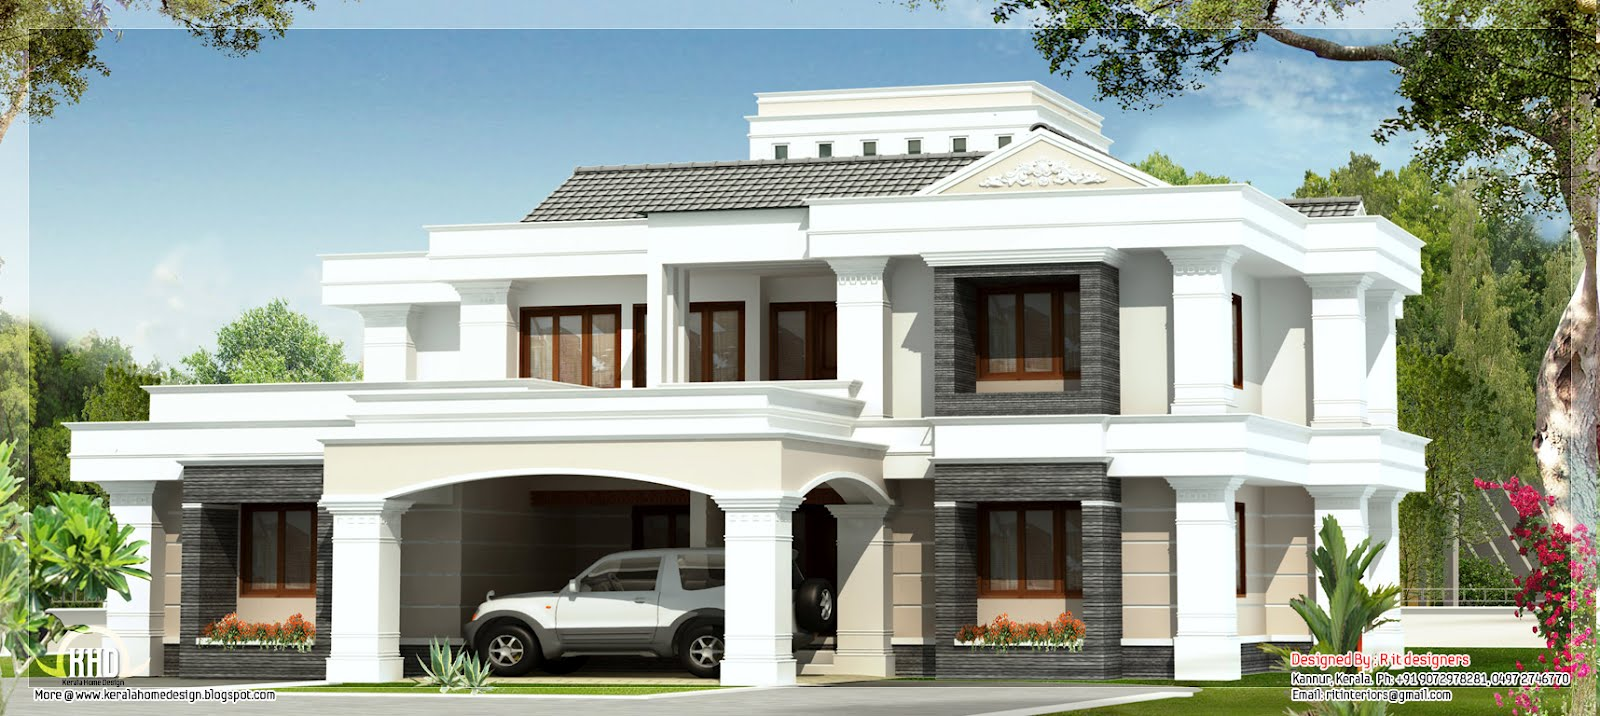 double floor 4 bedroom house indian house plans